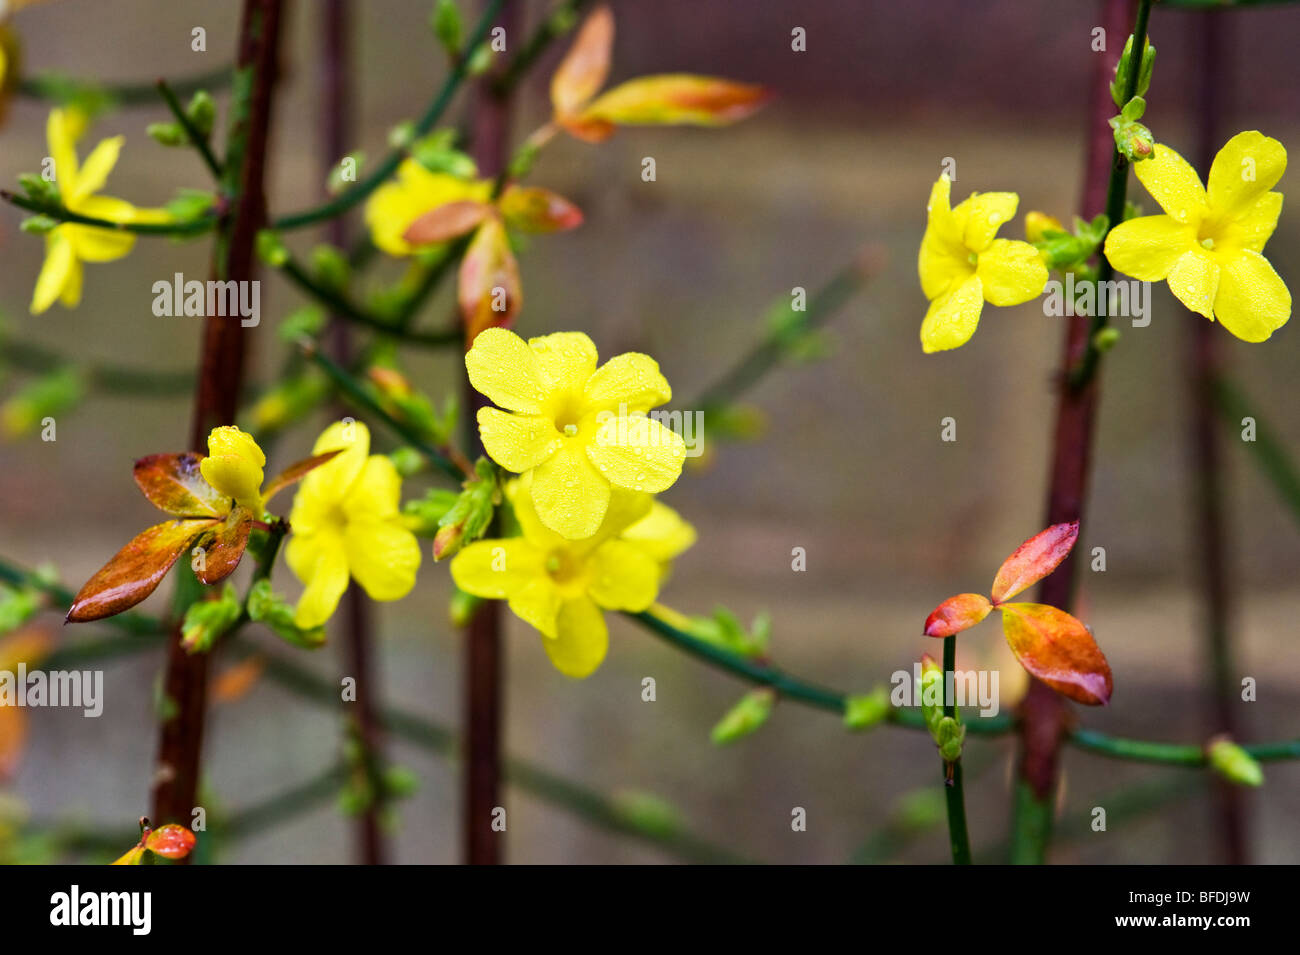 Winter Flowering Jasmine A Climbing Plant In A November Garden In